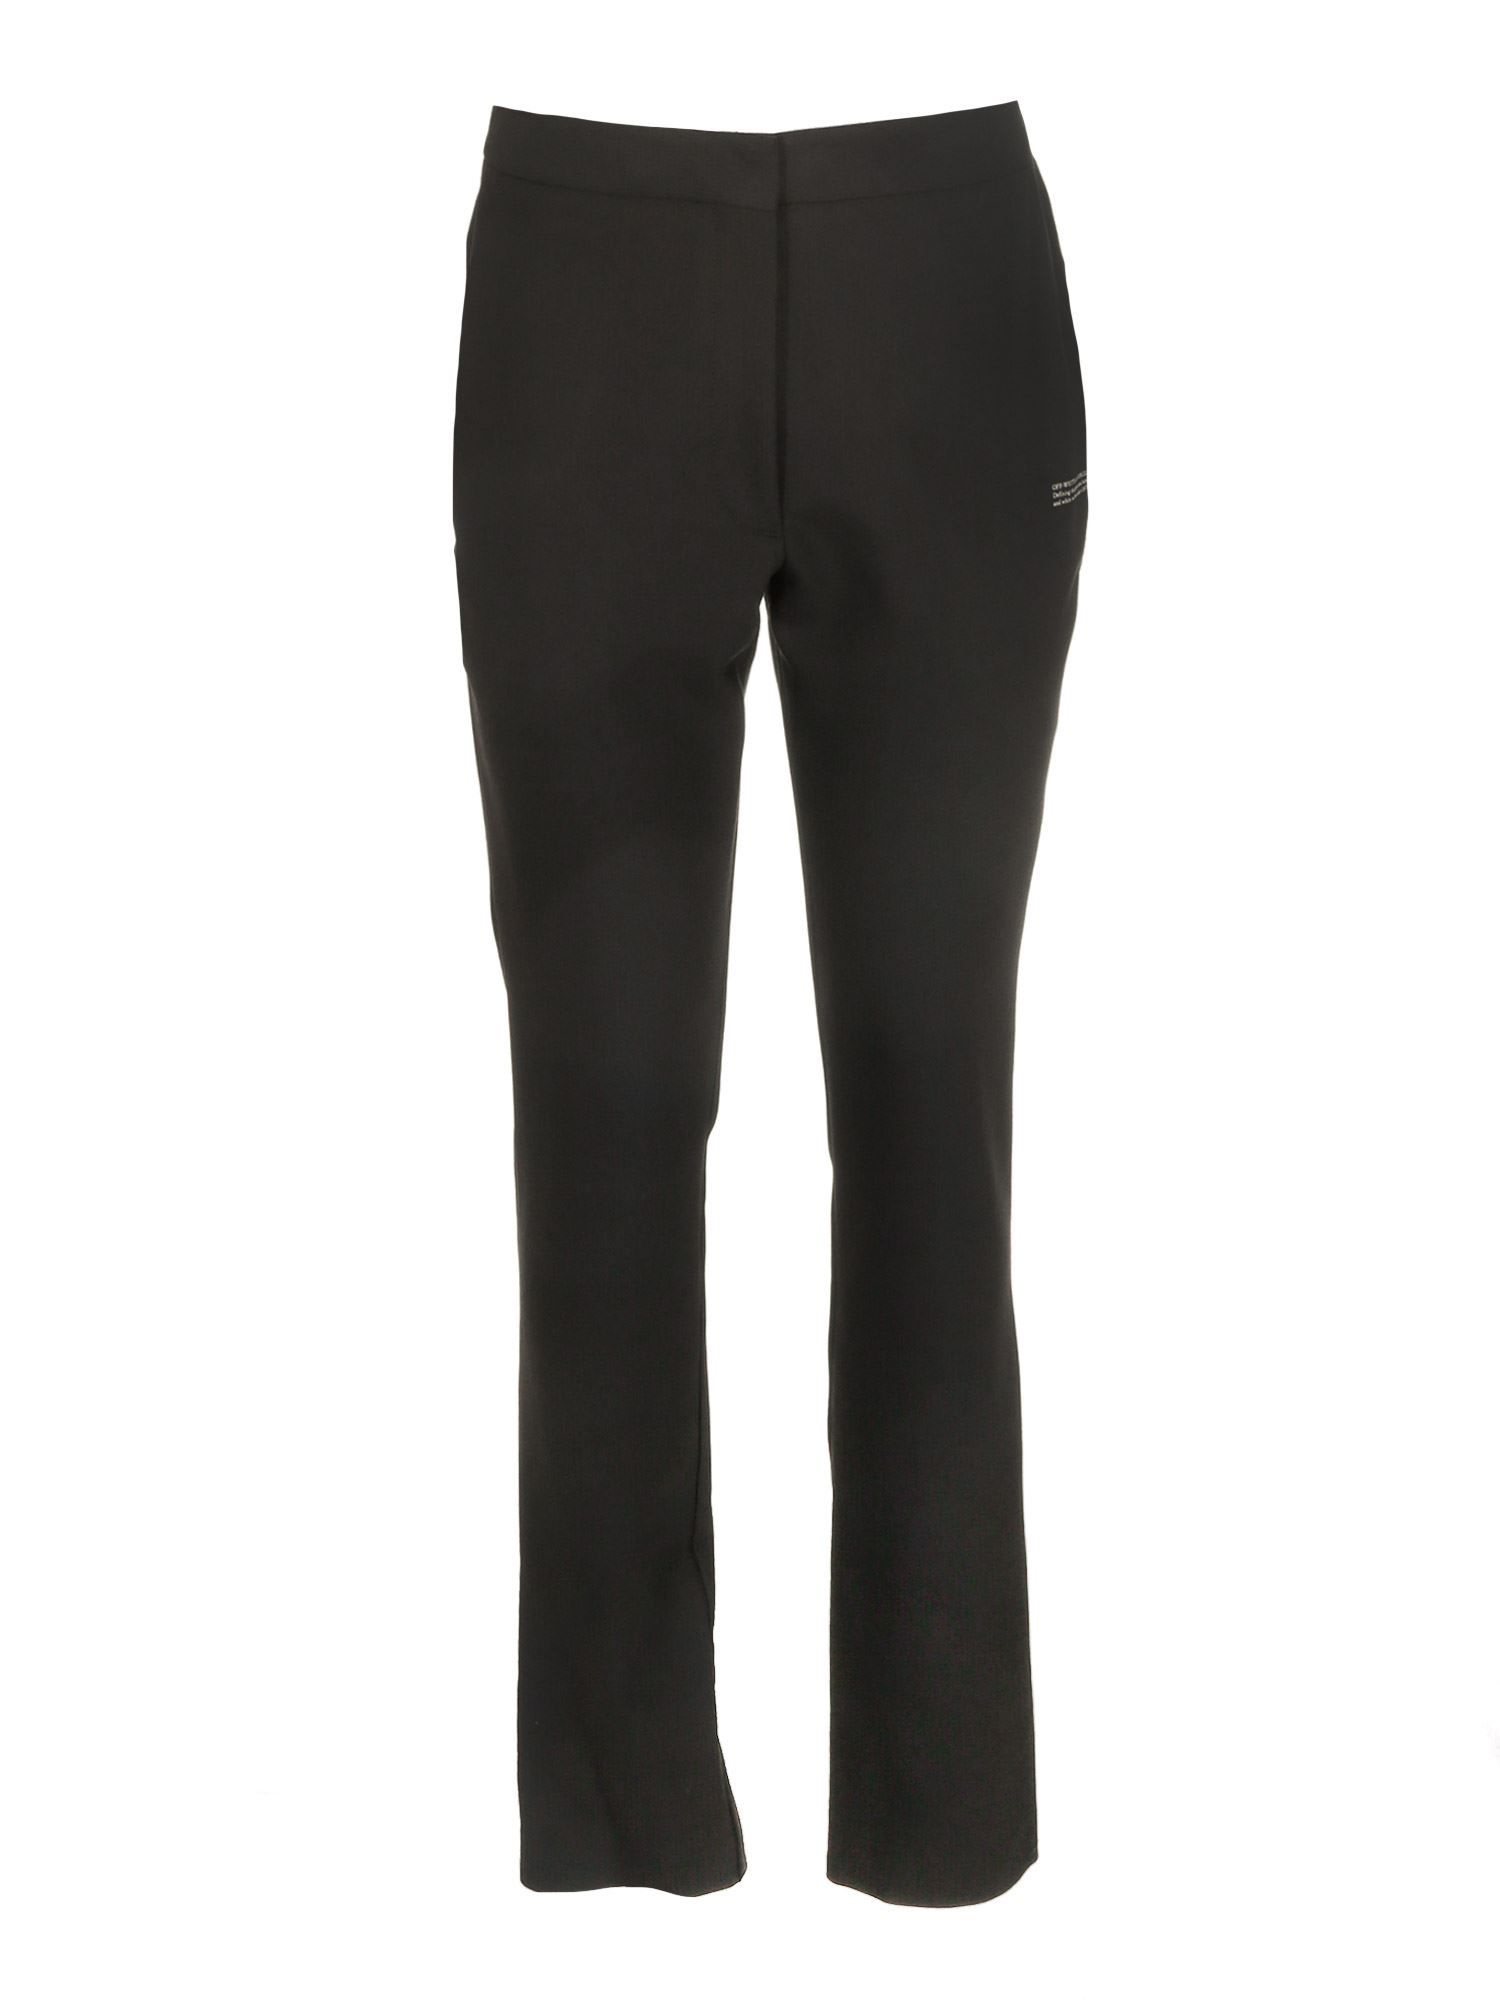 Off-white Tailored Pants In Black